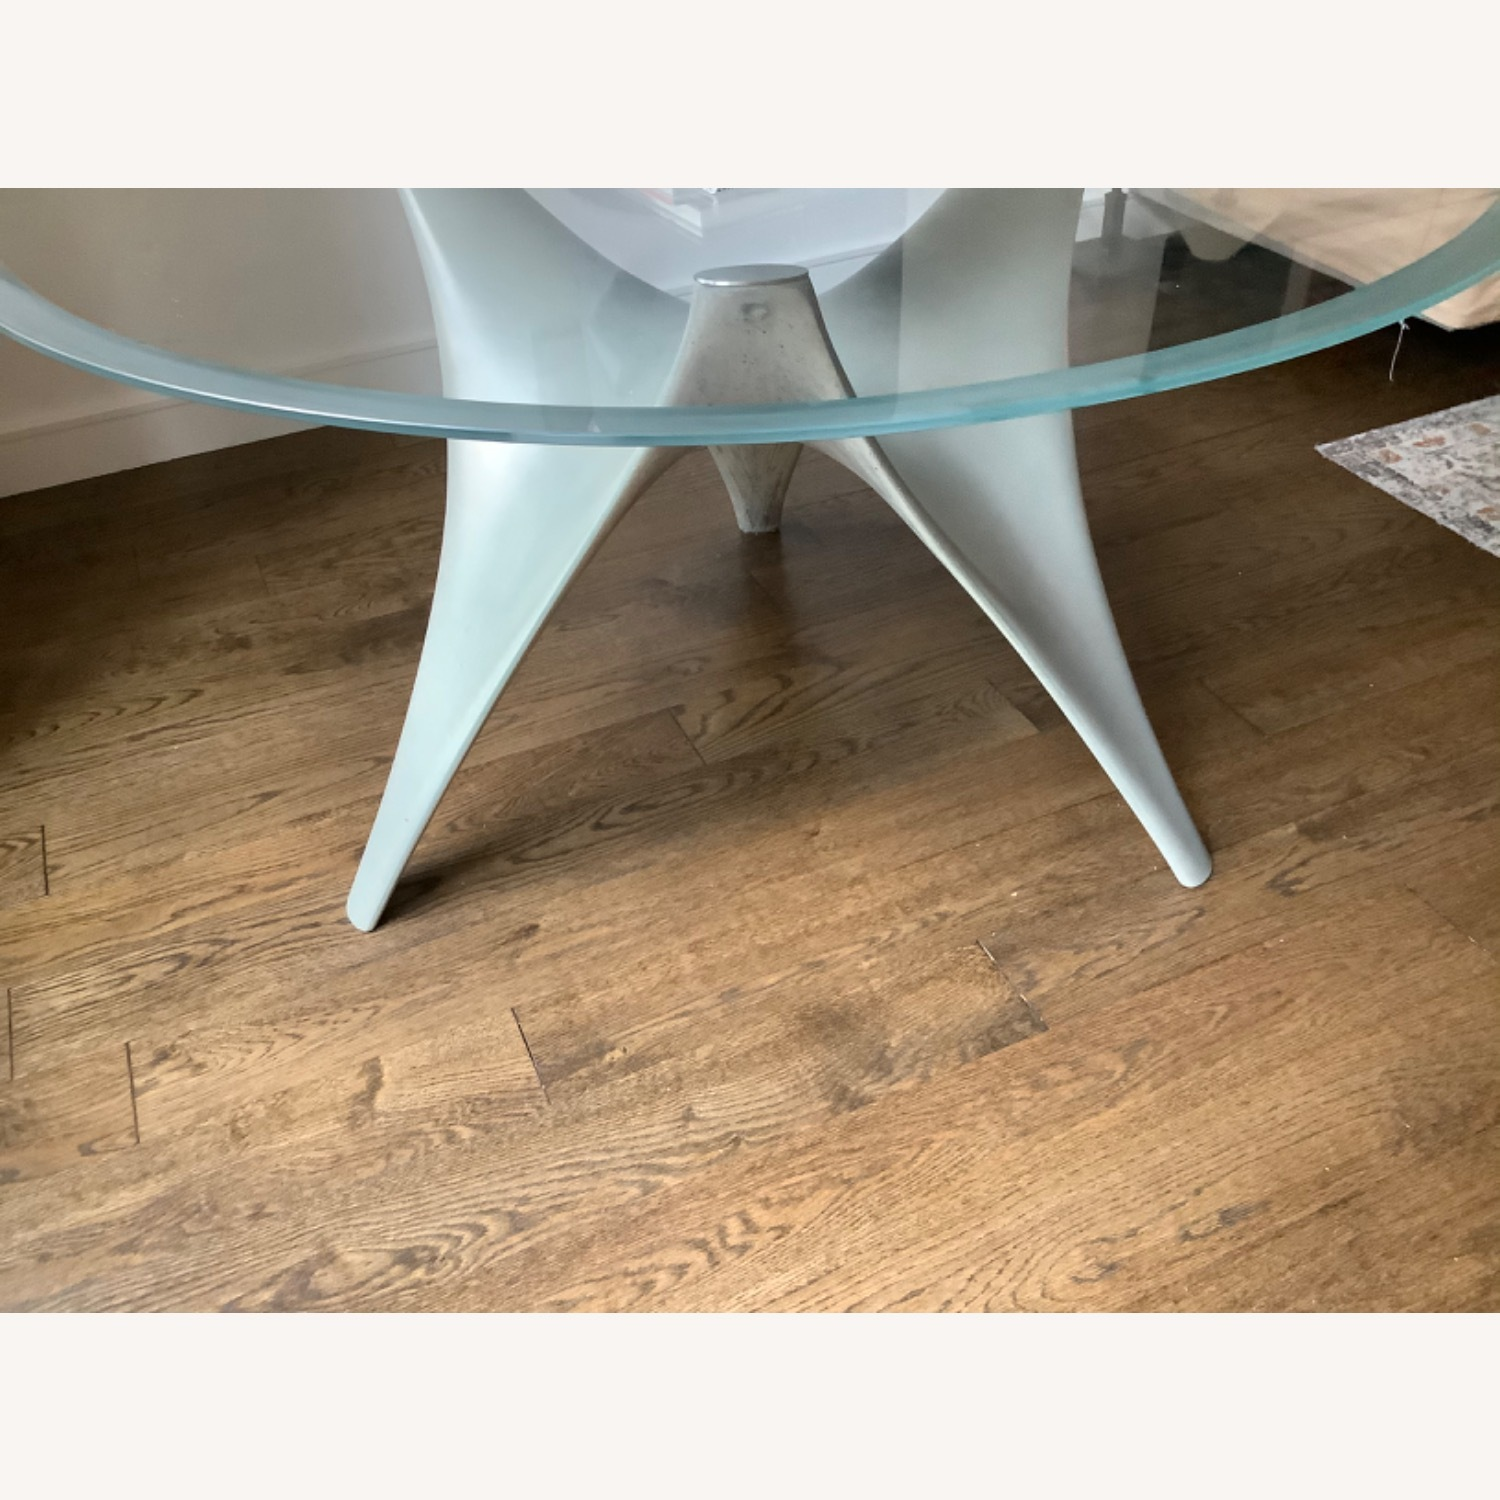 Molteni Arc Dining Table - Grey - image-6